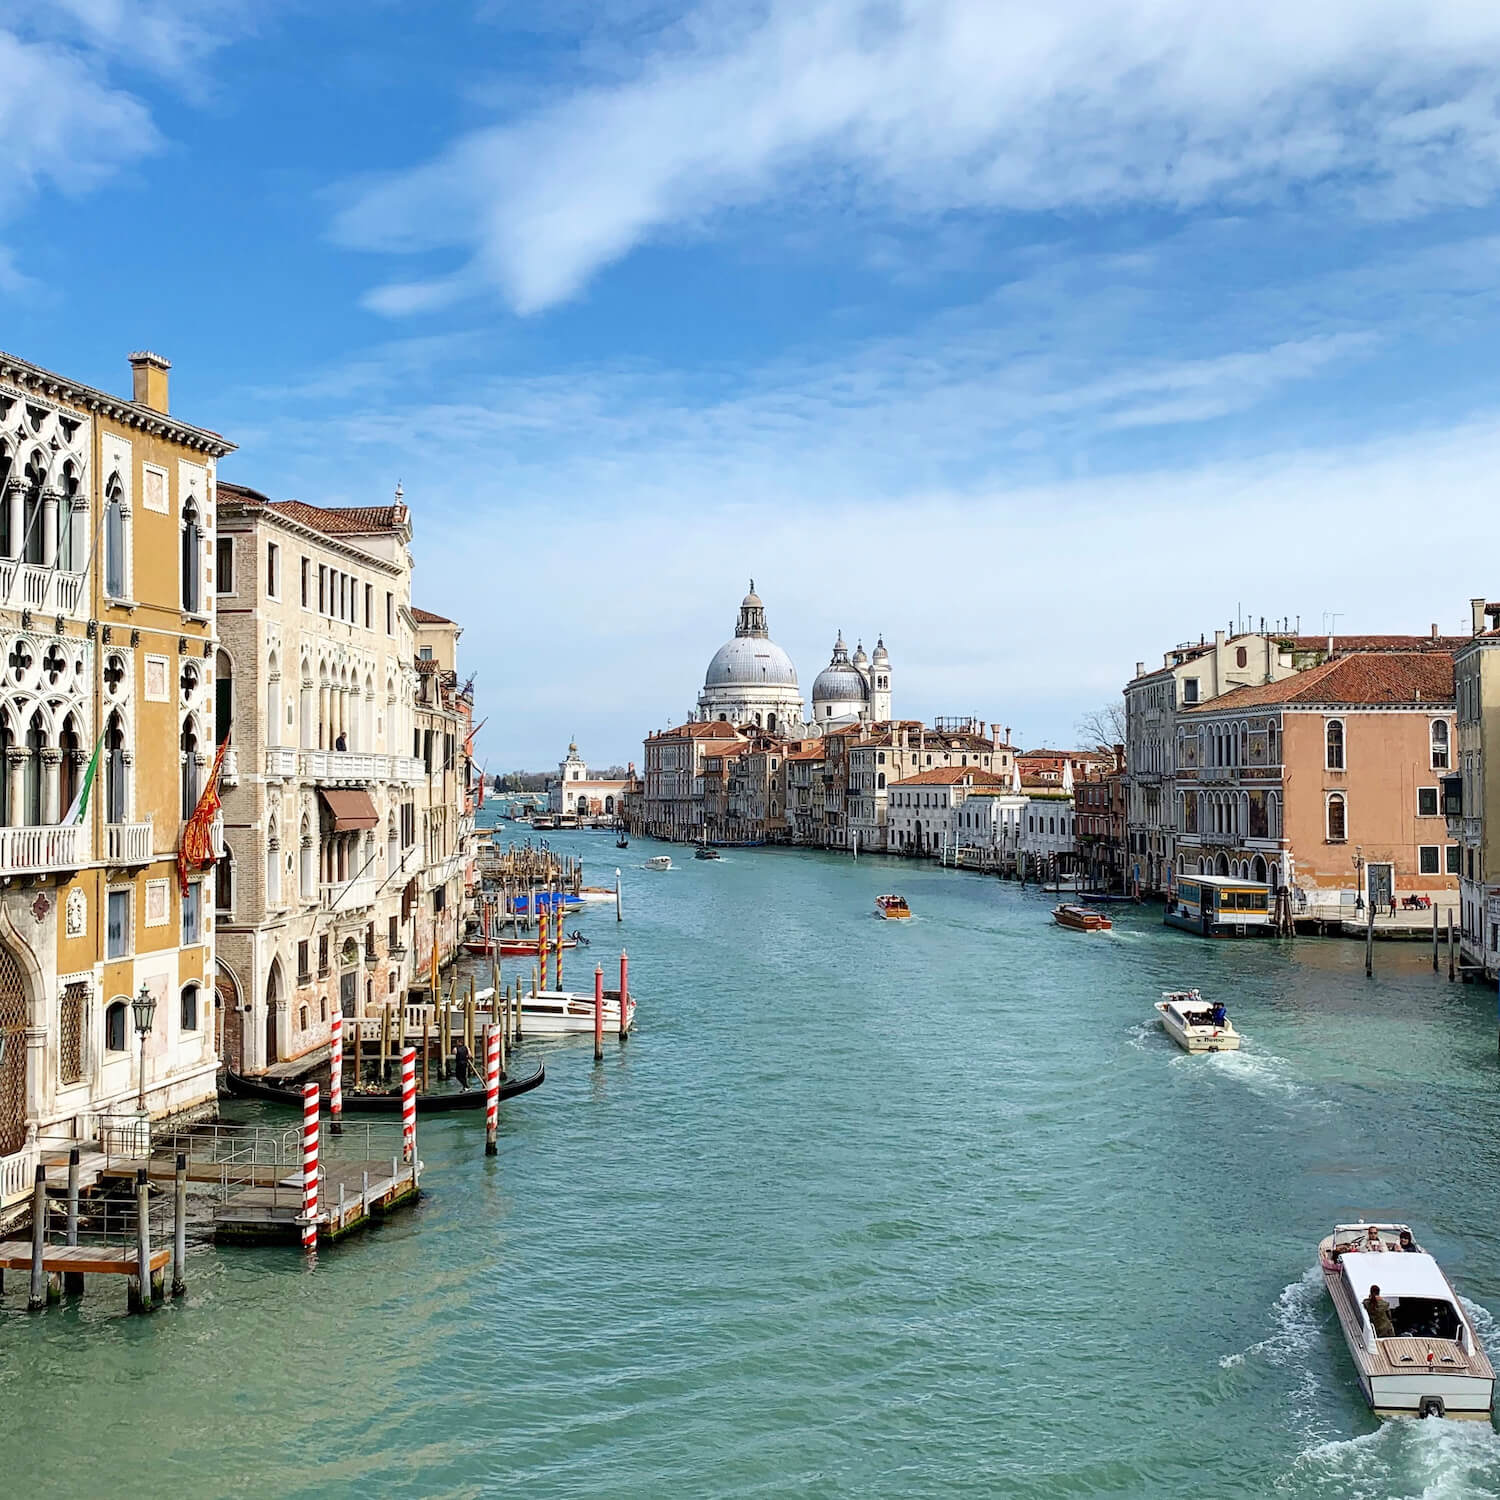 Venice, Italy - Grand Canal - Venice on a Budget